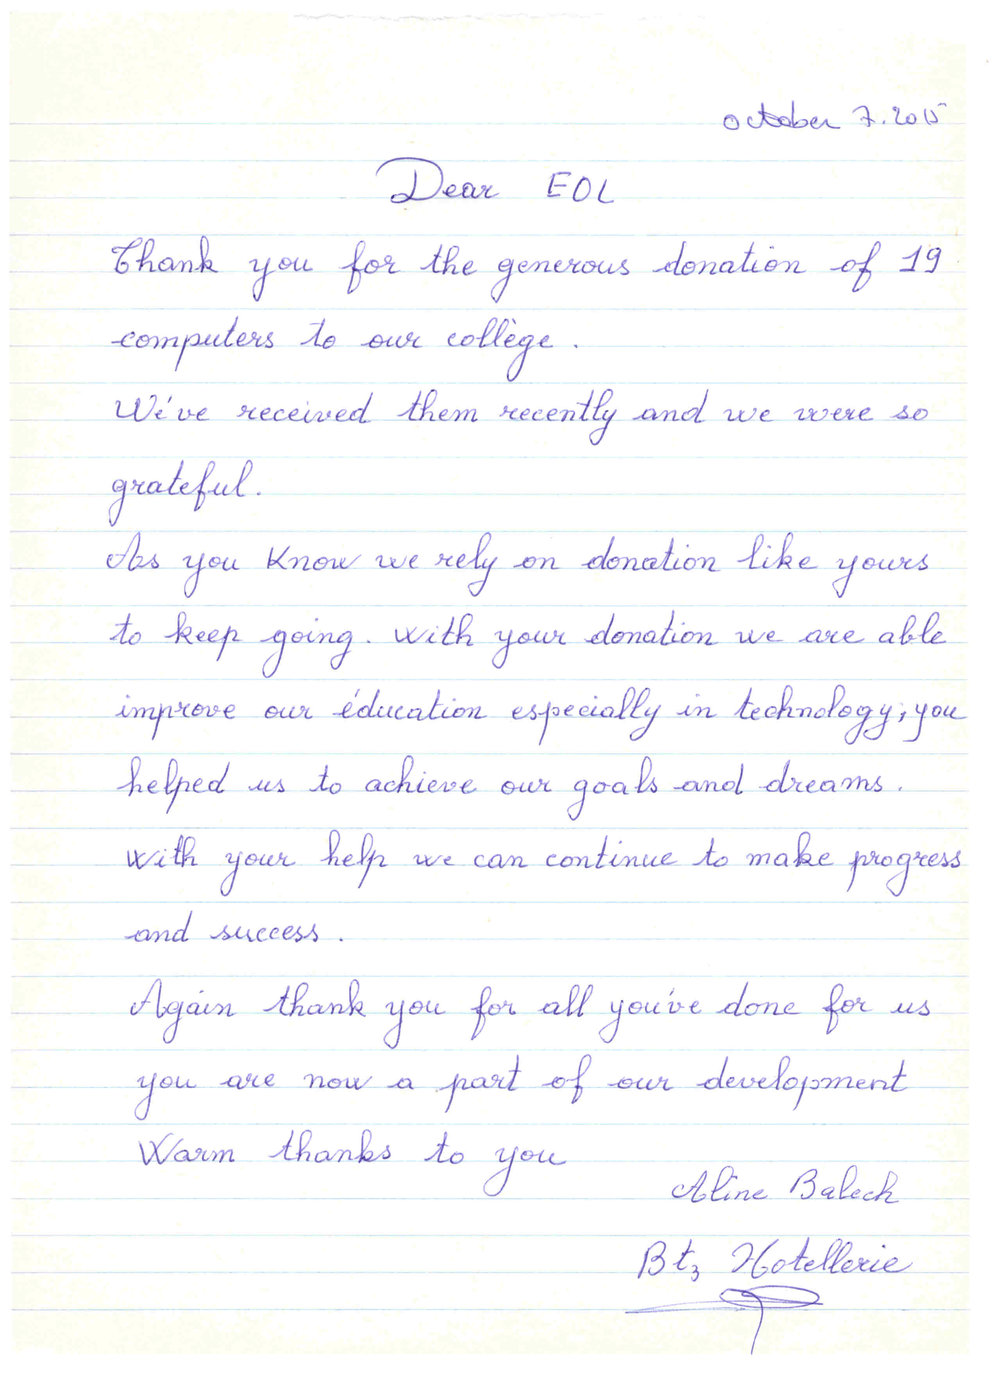 Letter reads: Dear EOL, Thank you for the generous donation of 19 computers to your college. We've received them recently and we are so grateful. As you know we rely on donations like yours to keep going. With your donation we are able to improve our education especially in technology, you helped us to achieve our goals and dreams. With your help we can continue to make progress and success. Again thank you for all you've done for us you are now part of our development. Warm thanks to you.